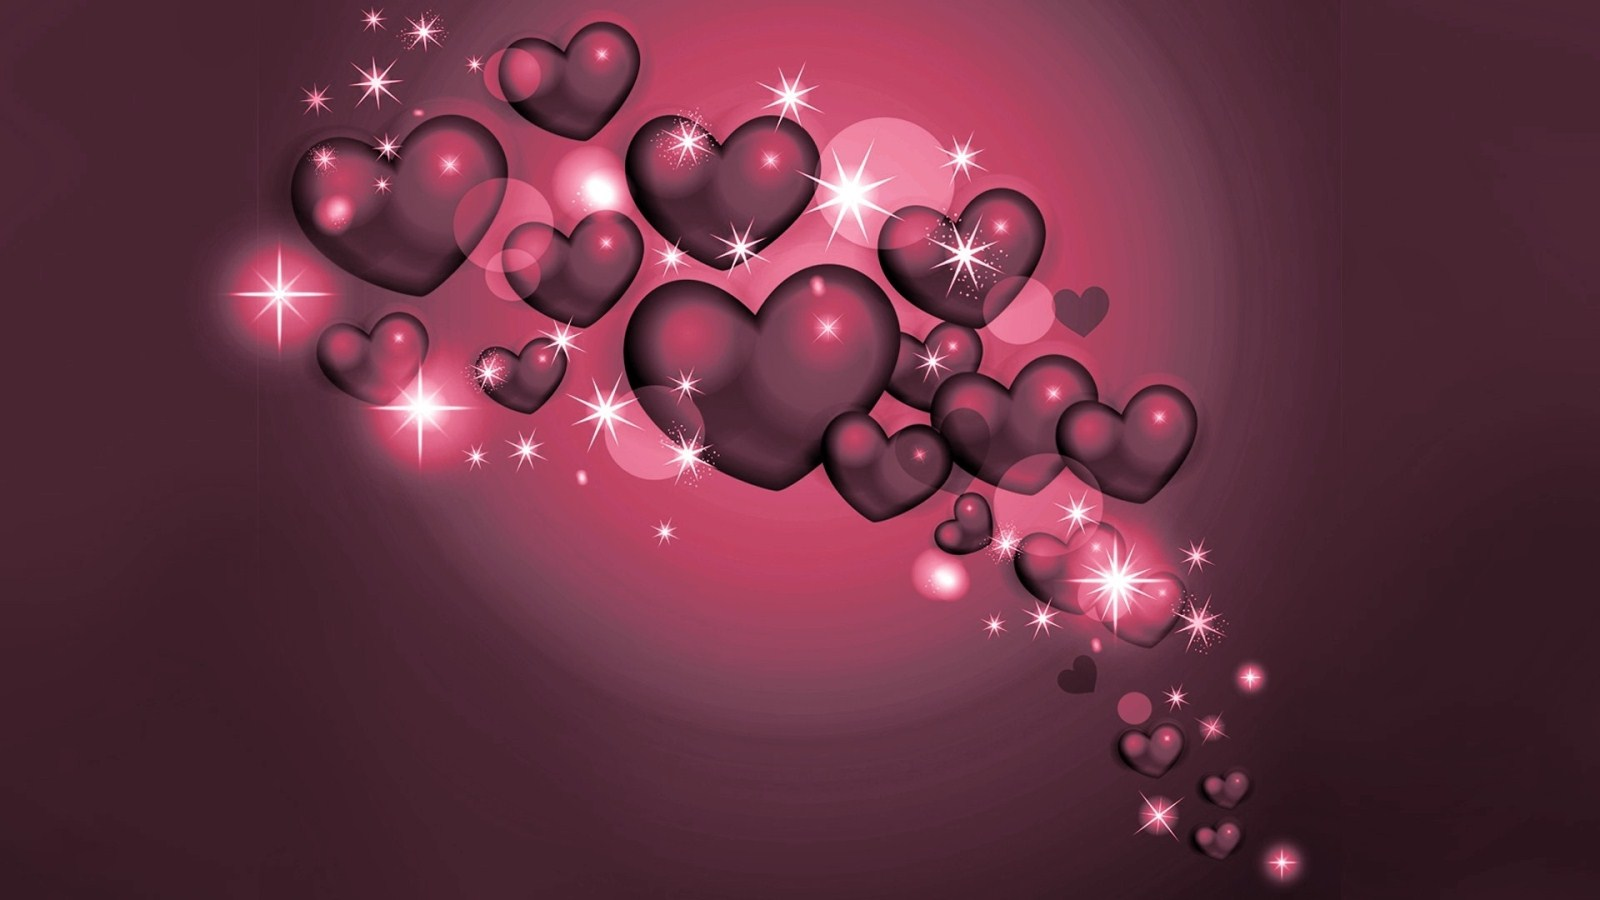 Love Wallpapers Hd Zip : 3D Desktop Love Wallpaper - WallpaperSafari